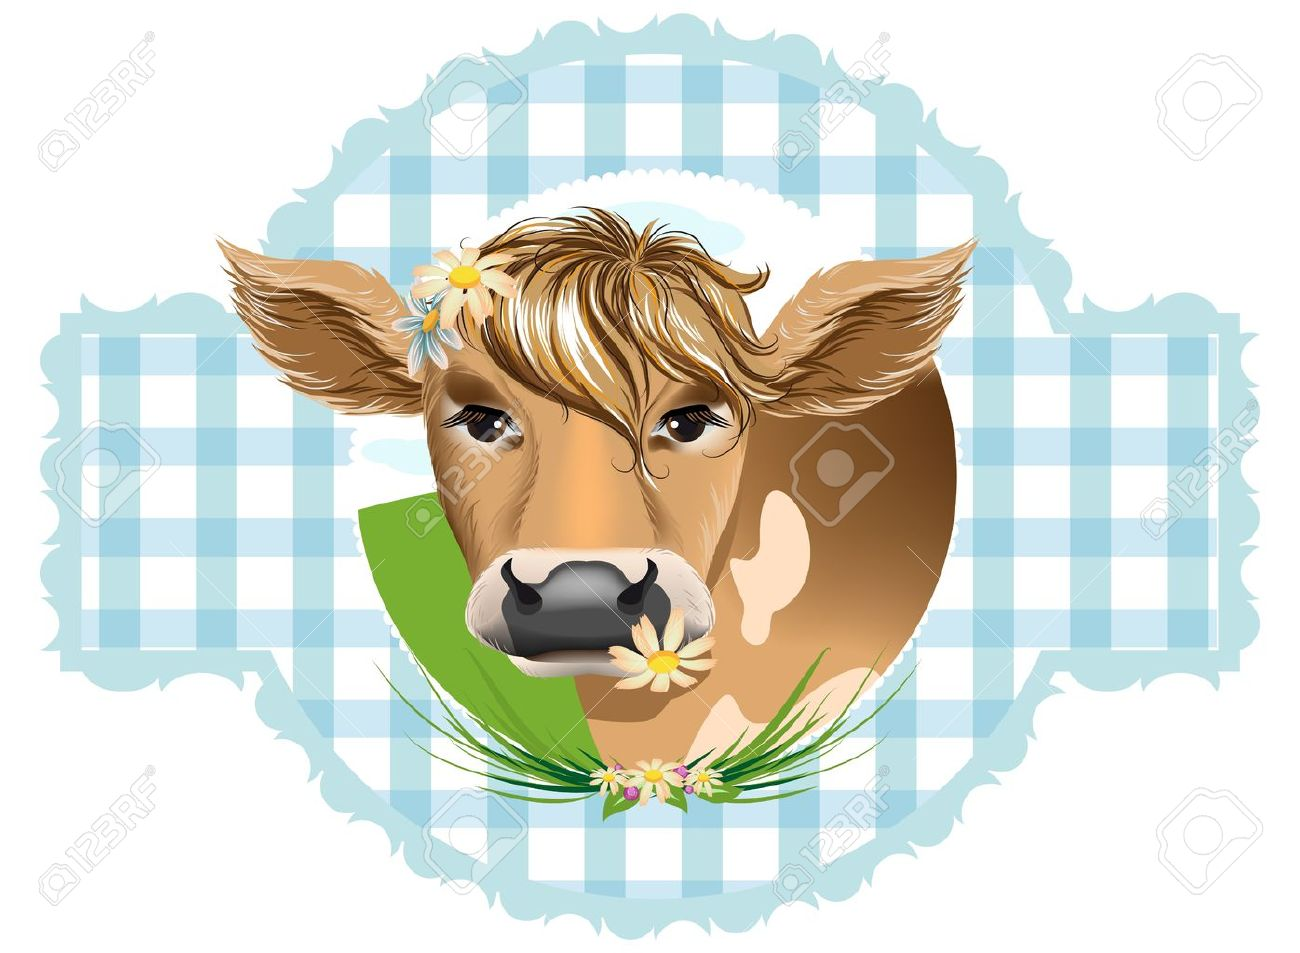 Cows with flowers in their teeth - 9348554